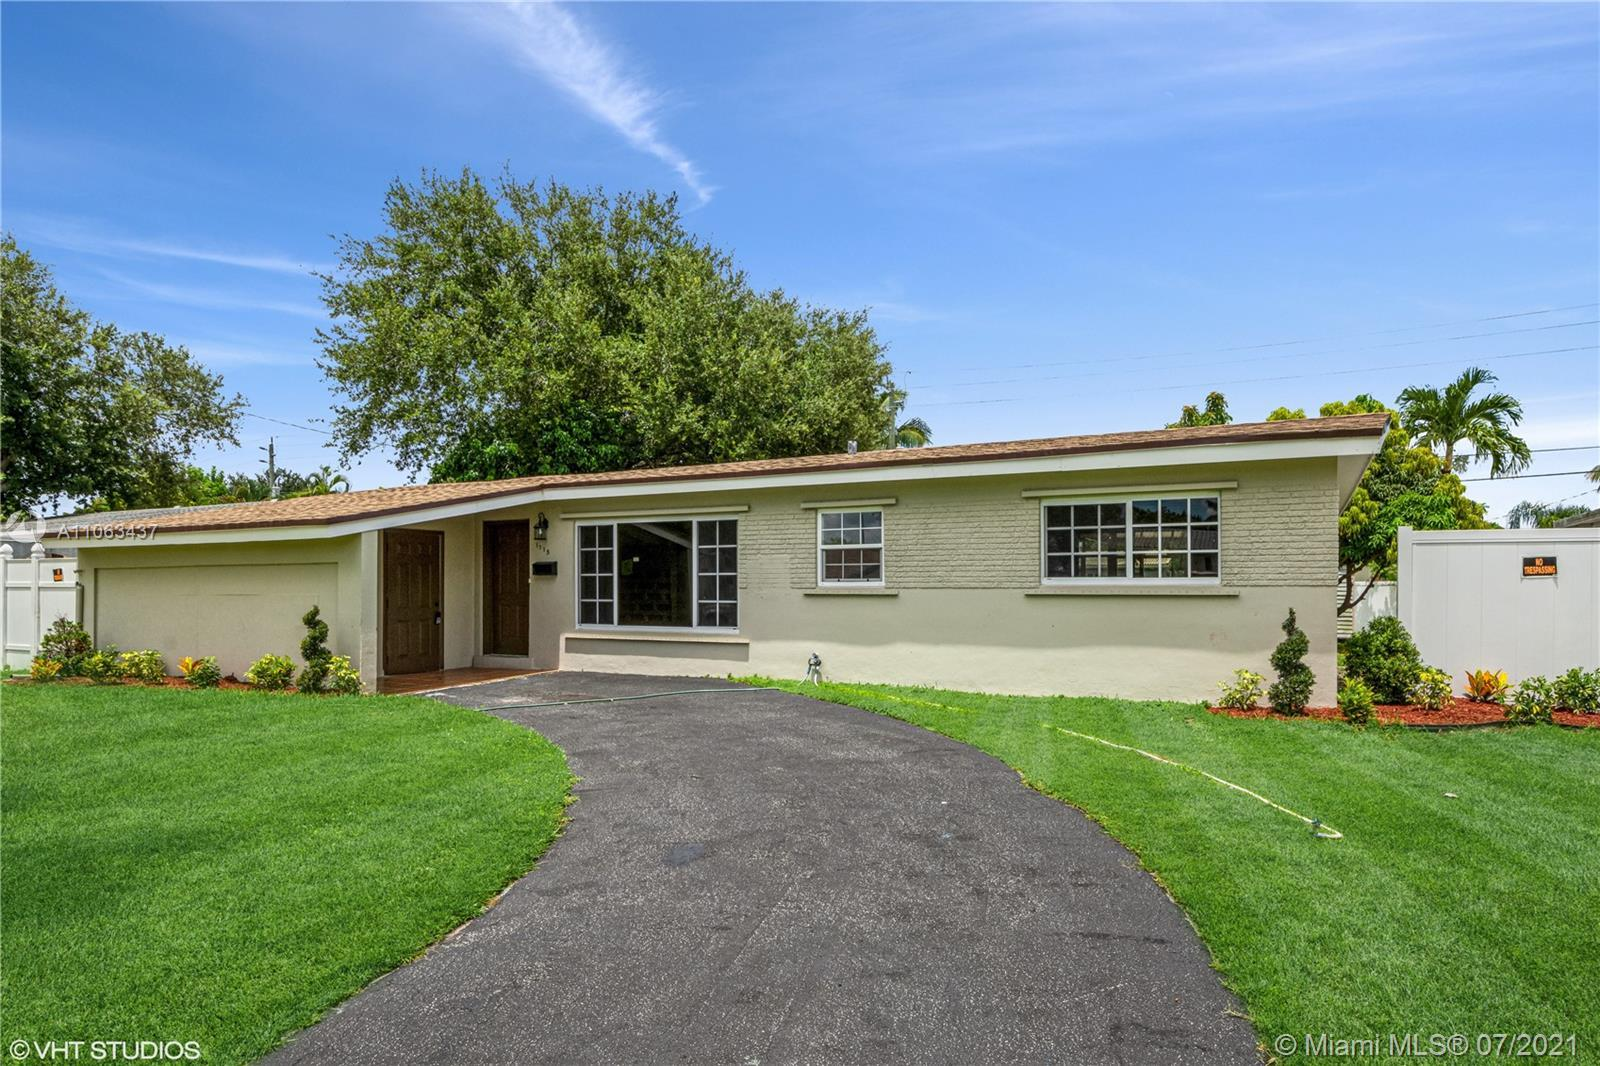 Spacious and renovated 4 bedroom 3 bath home with an in law-quarters, offers a new roof, new kitchen